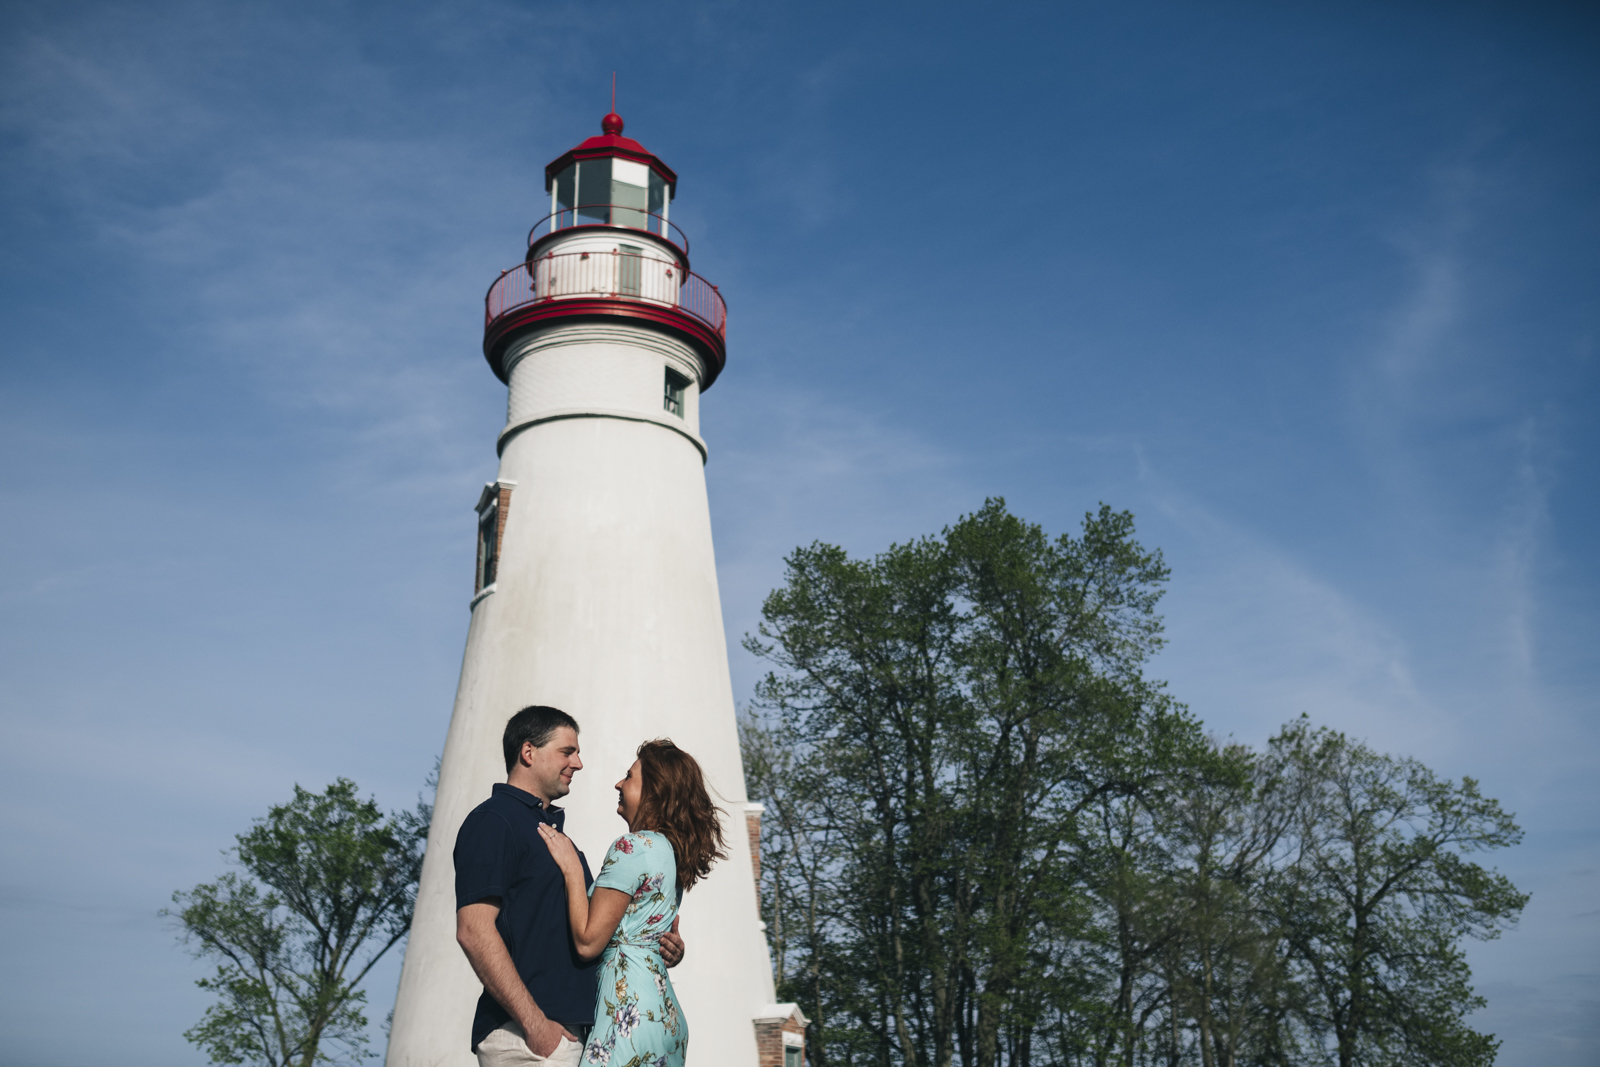 Engagement session at the lighthouse in Marblehead, Ohio.